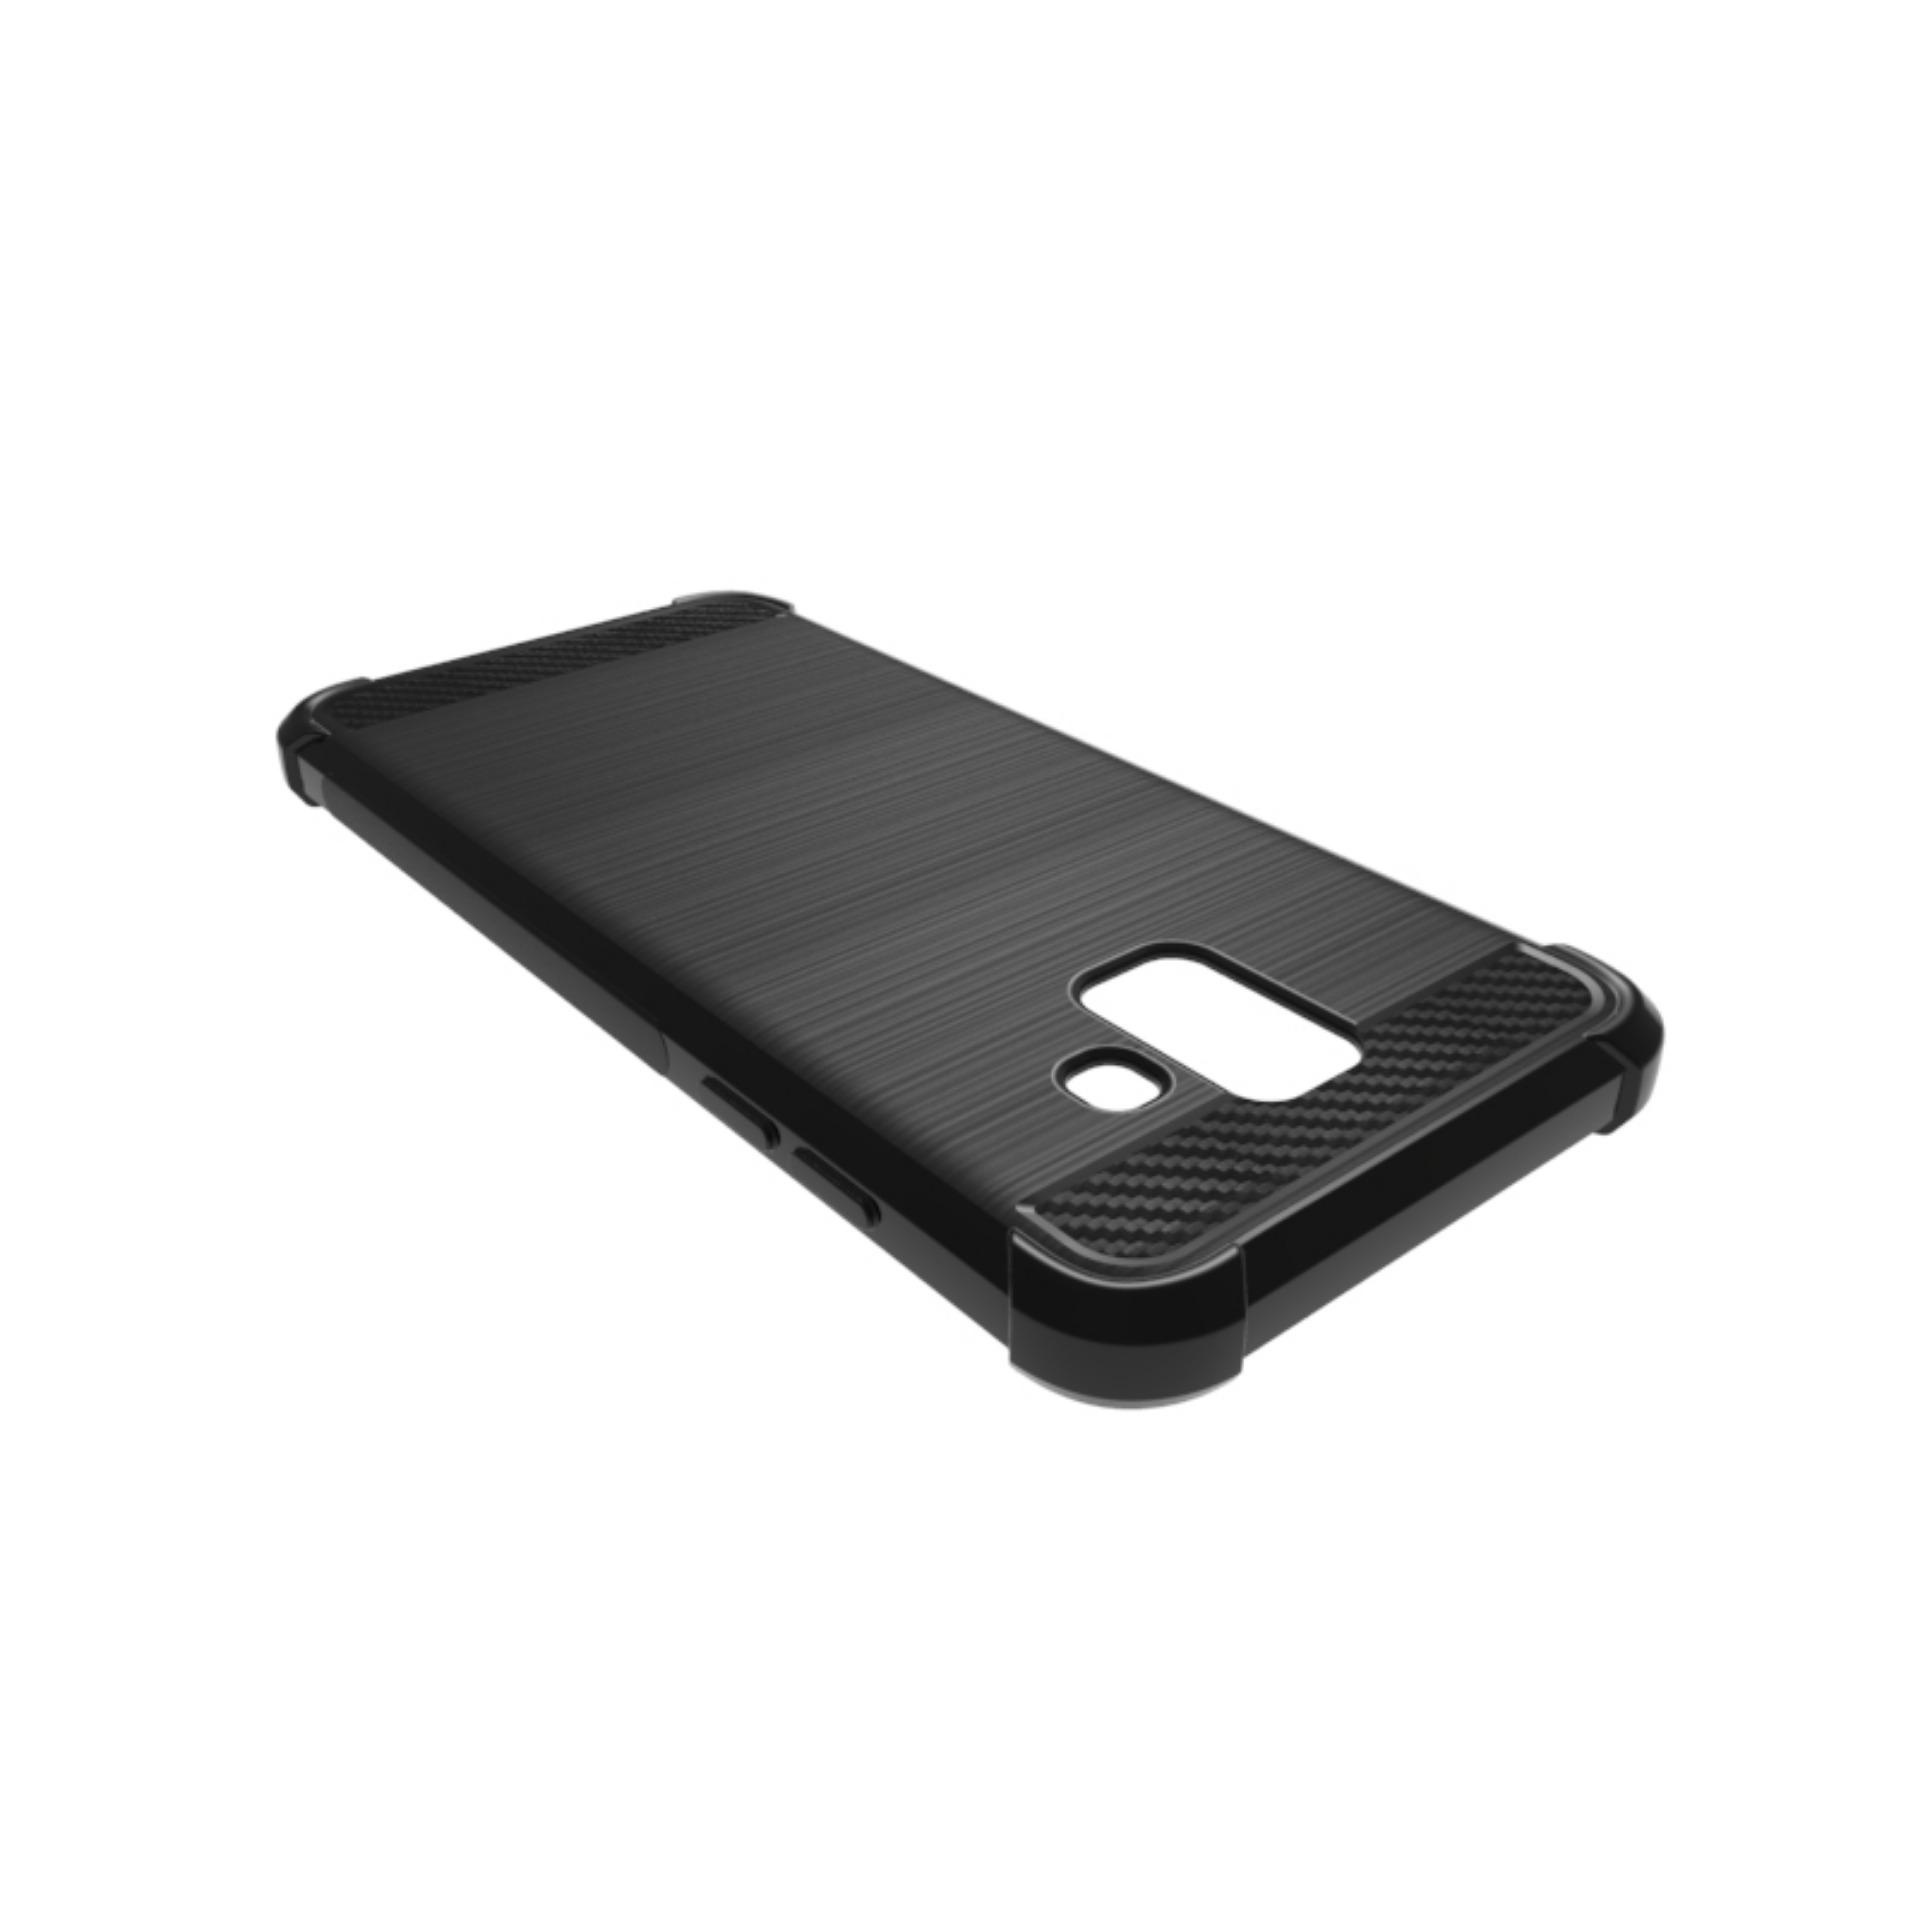 ... Accessories Hp Brushed Carbon Crack Case Samsung Galaxy A6 2018 ( 5.6 inch ) - Black ...